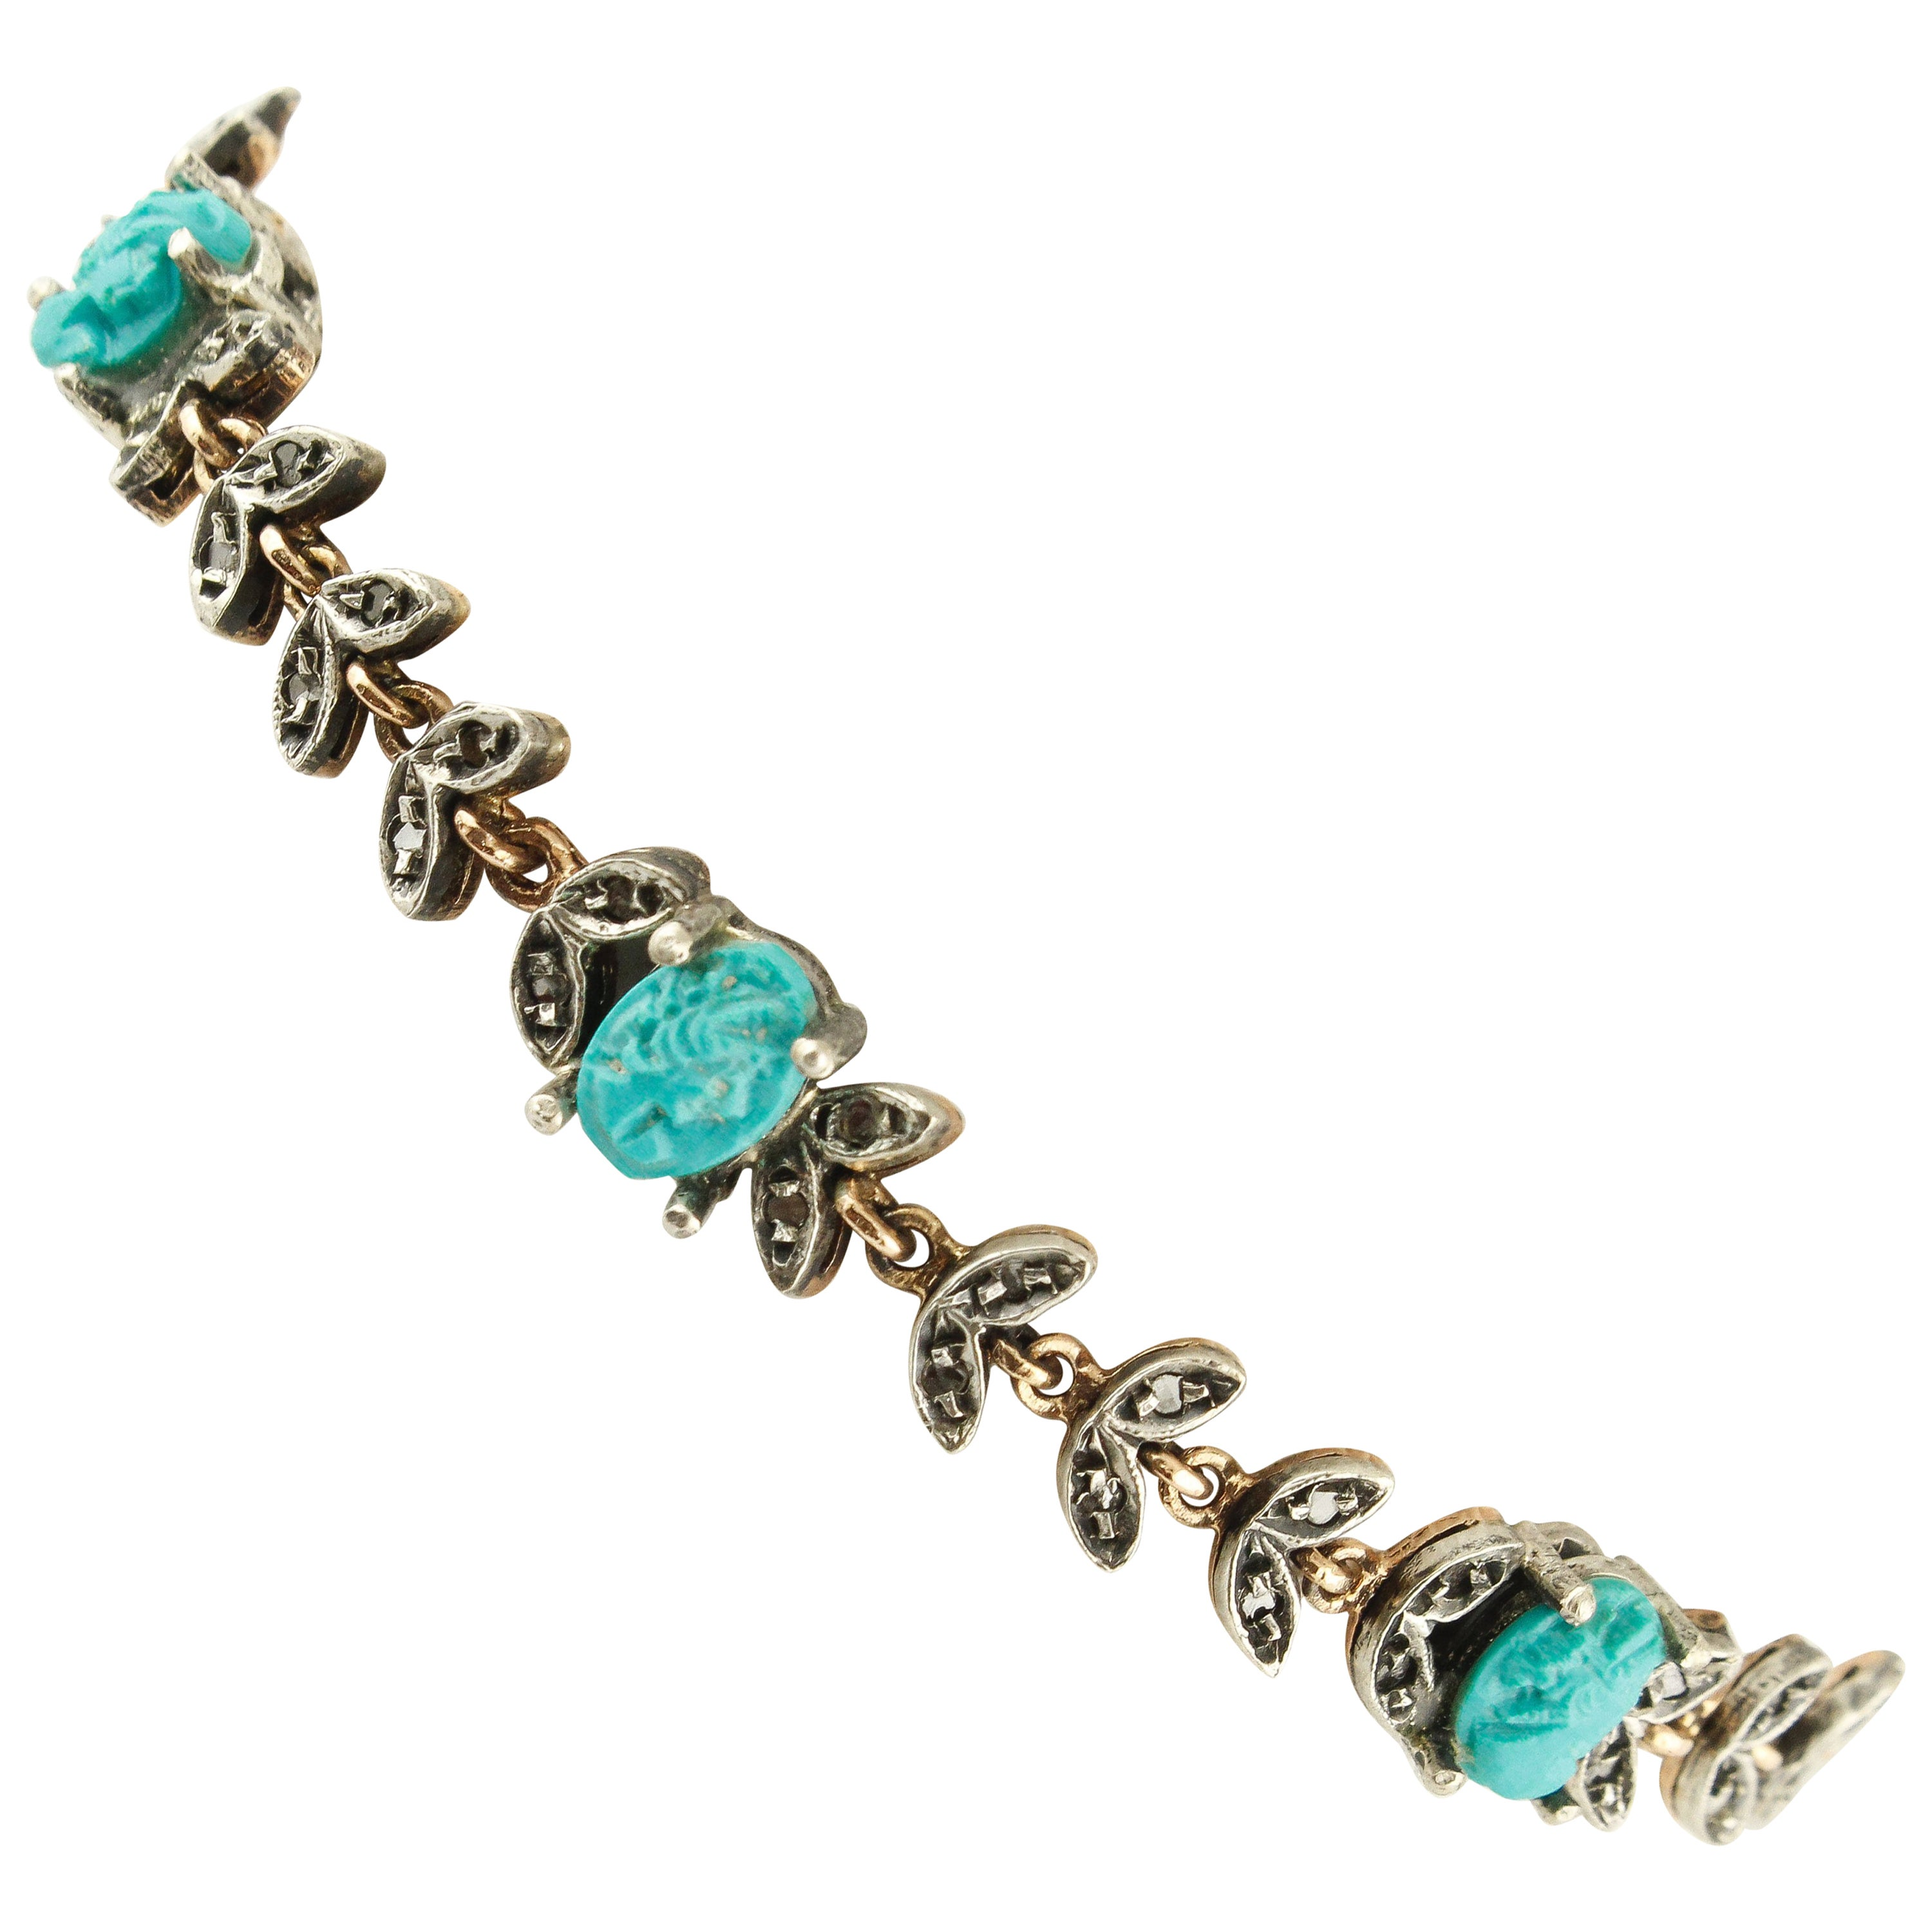 Micro-Sculptures of Turquoise, Diamonds Rose Gold and Silver Link Bracelet